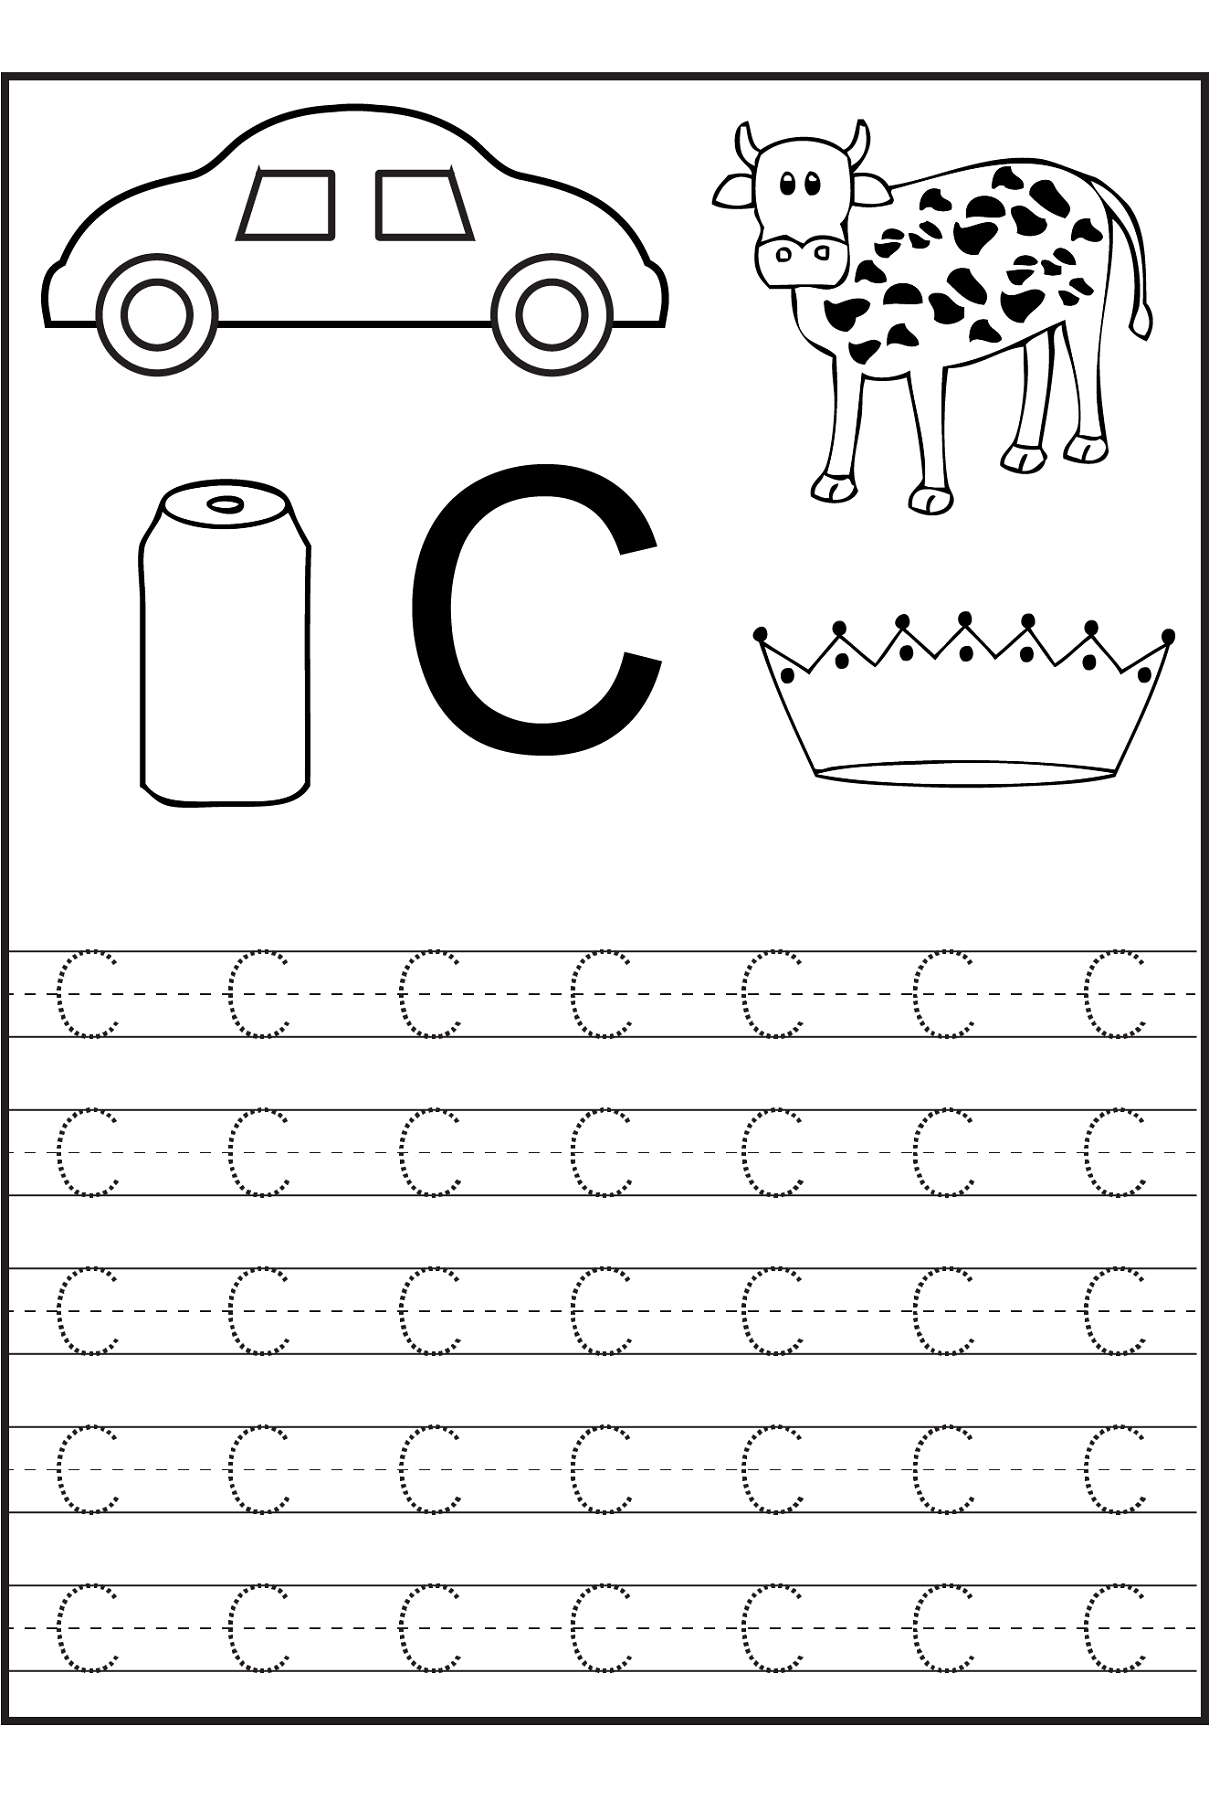 Letter C Tracing Worksheets For Preschoolers Awesome 82 Best for C Letter Tracing Worksheet